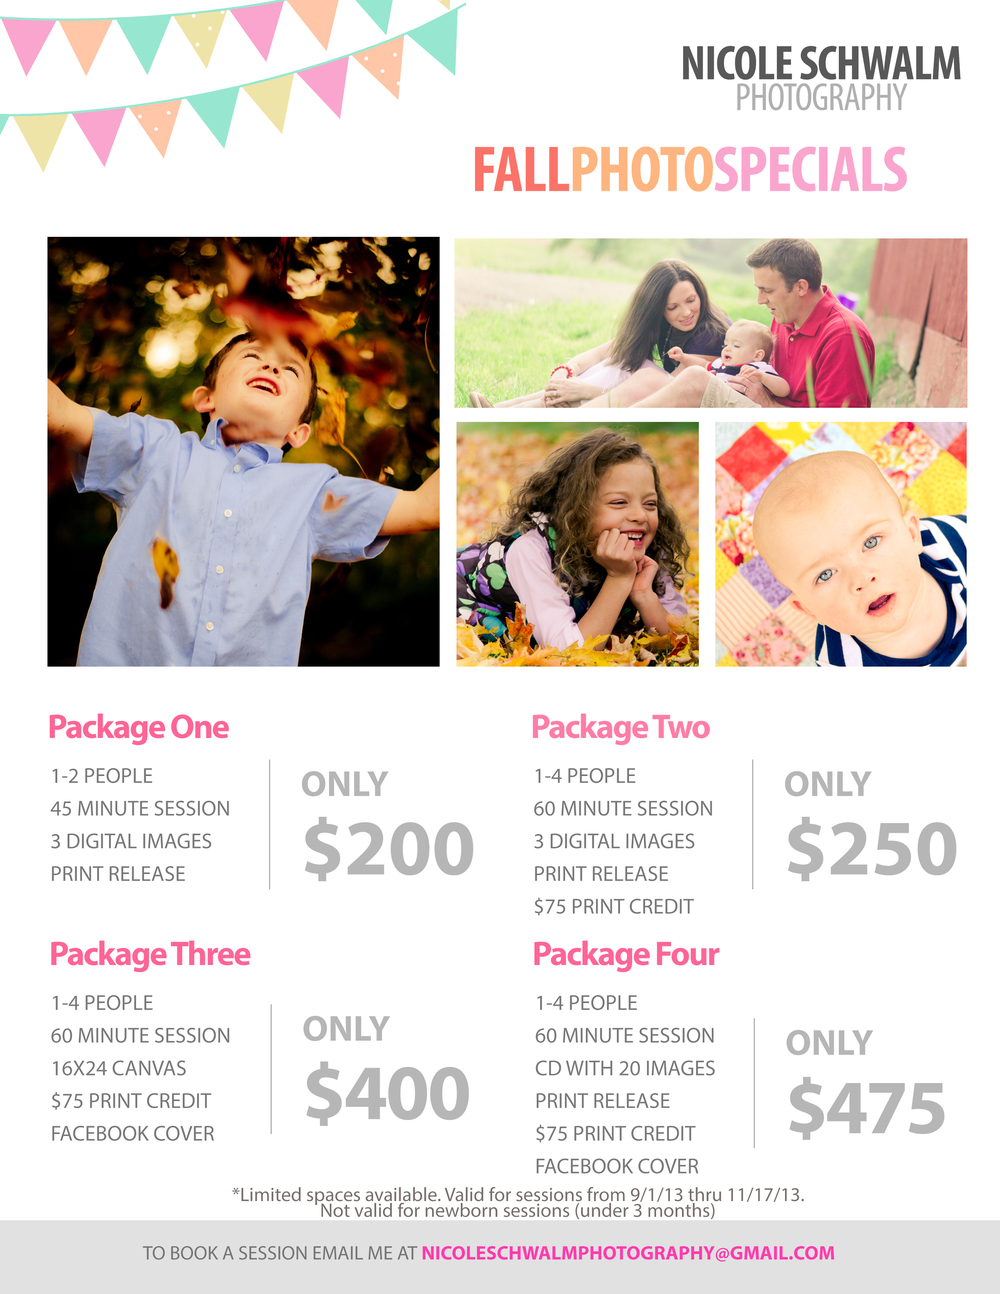 fall-pricing-specials-2013.jpg